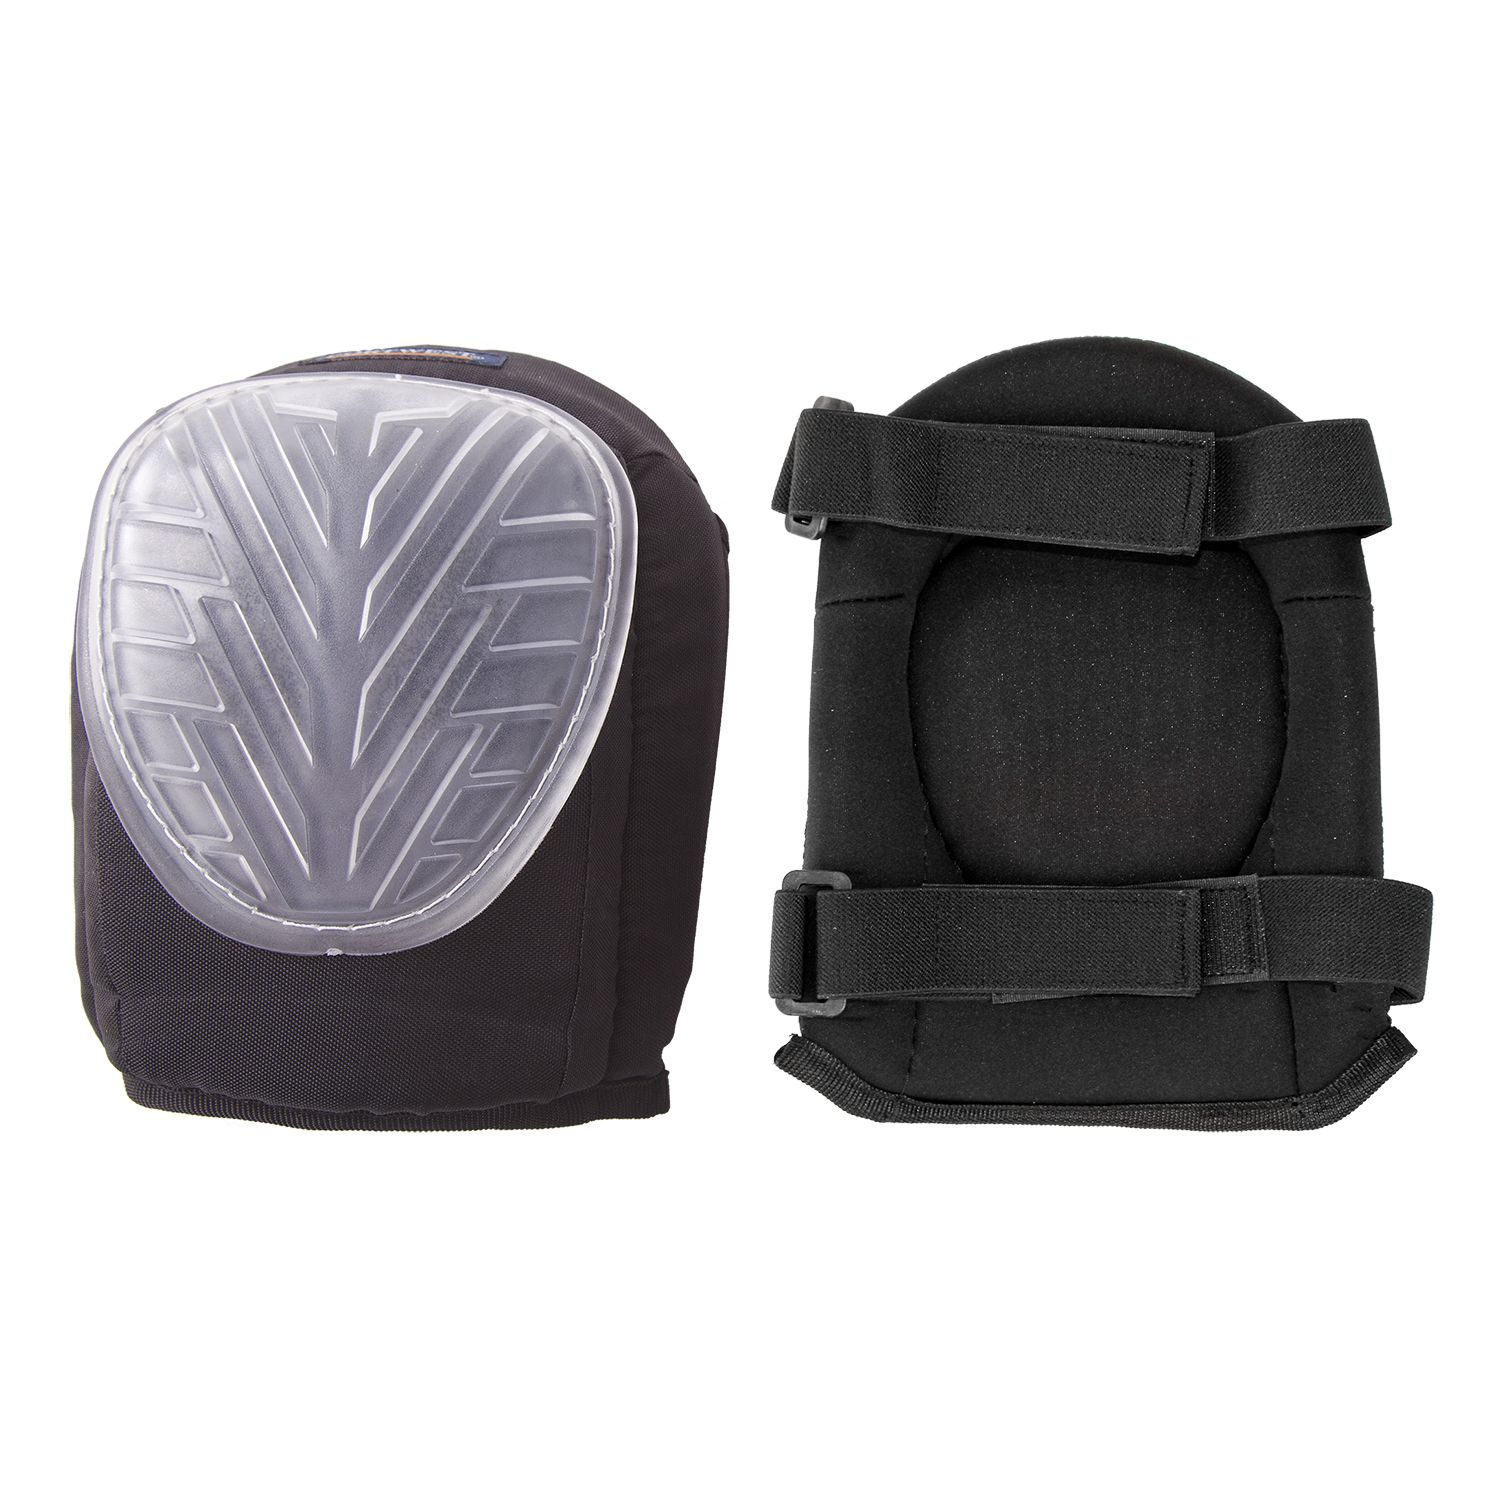 portwest KP30 knee pads